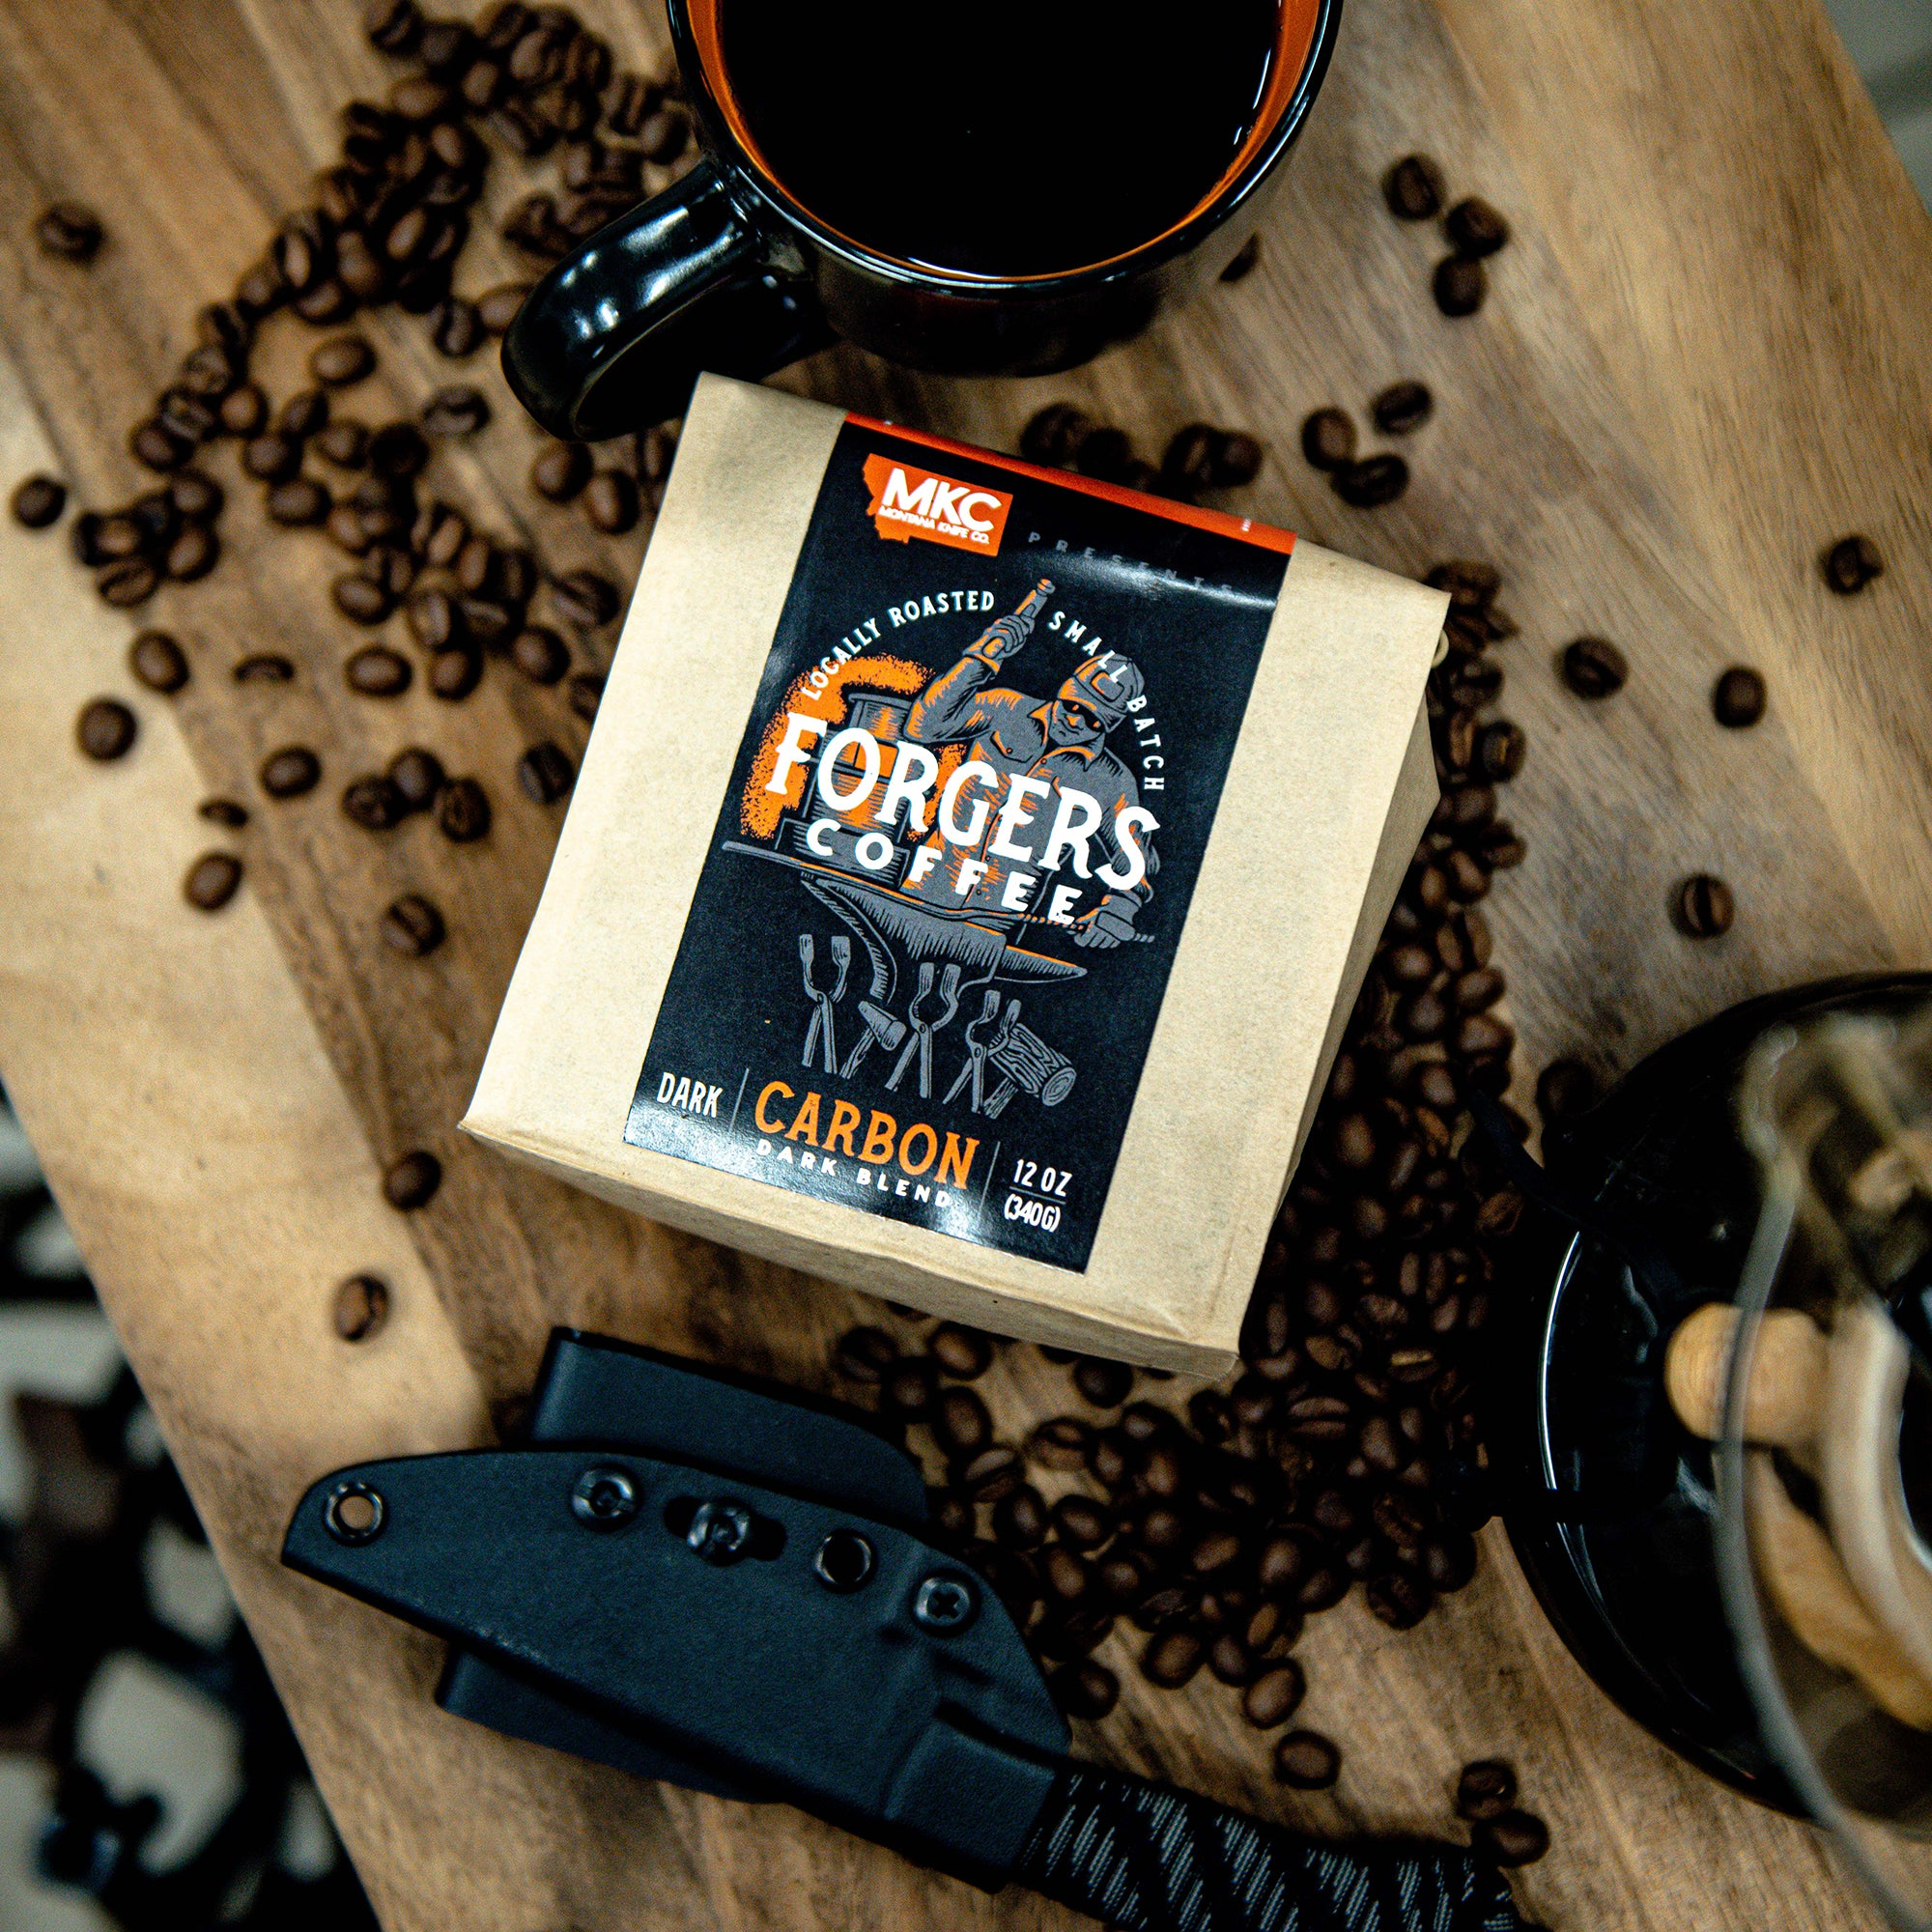 MKC FORGERS COFFEE- CARBON (DARK BLEND)